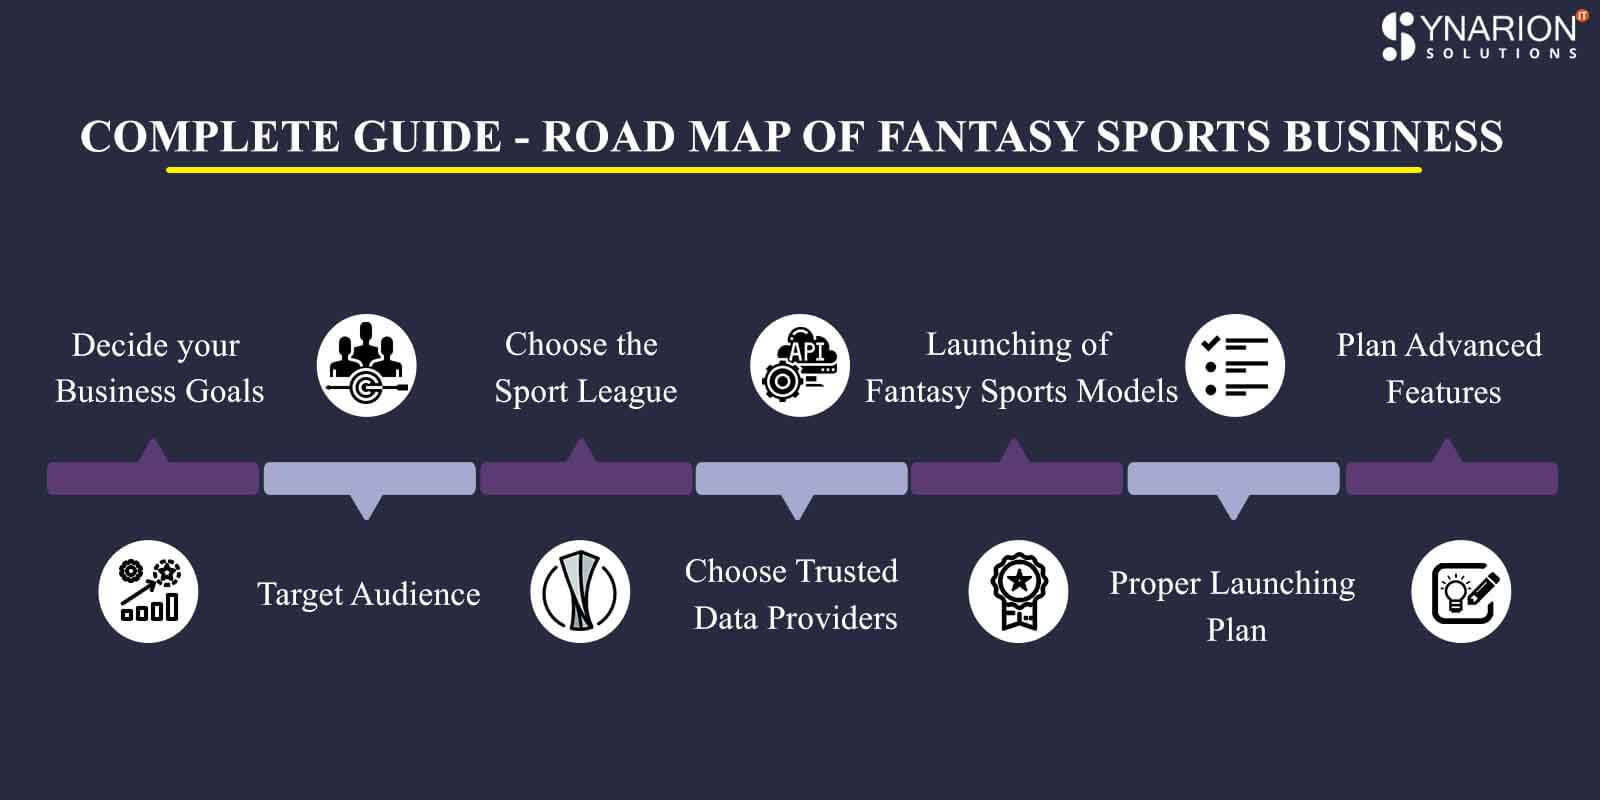 Complete Guide - Road map of Fantasy Sports Business